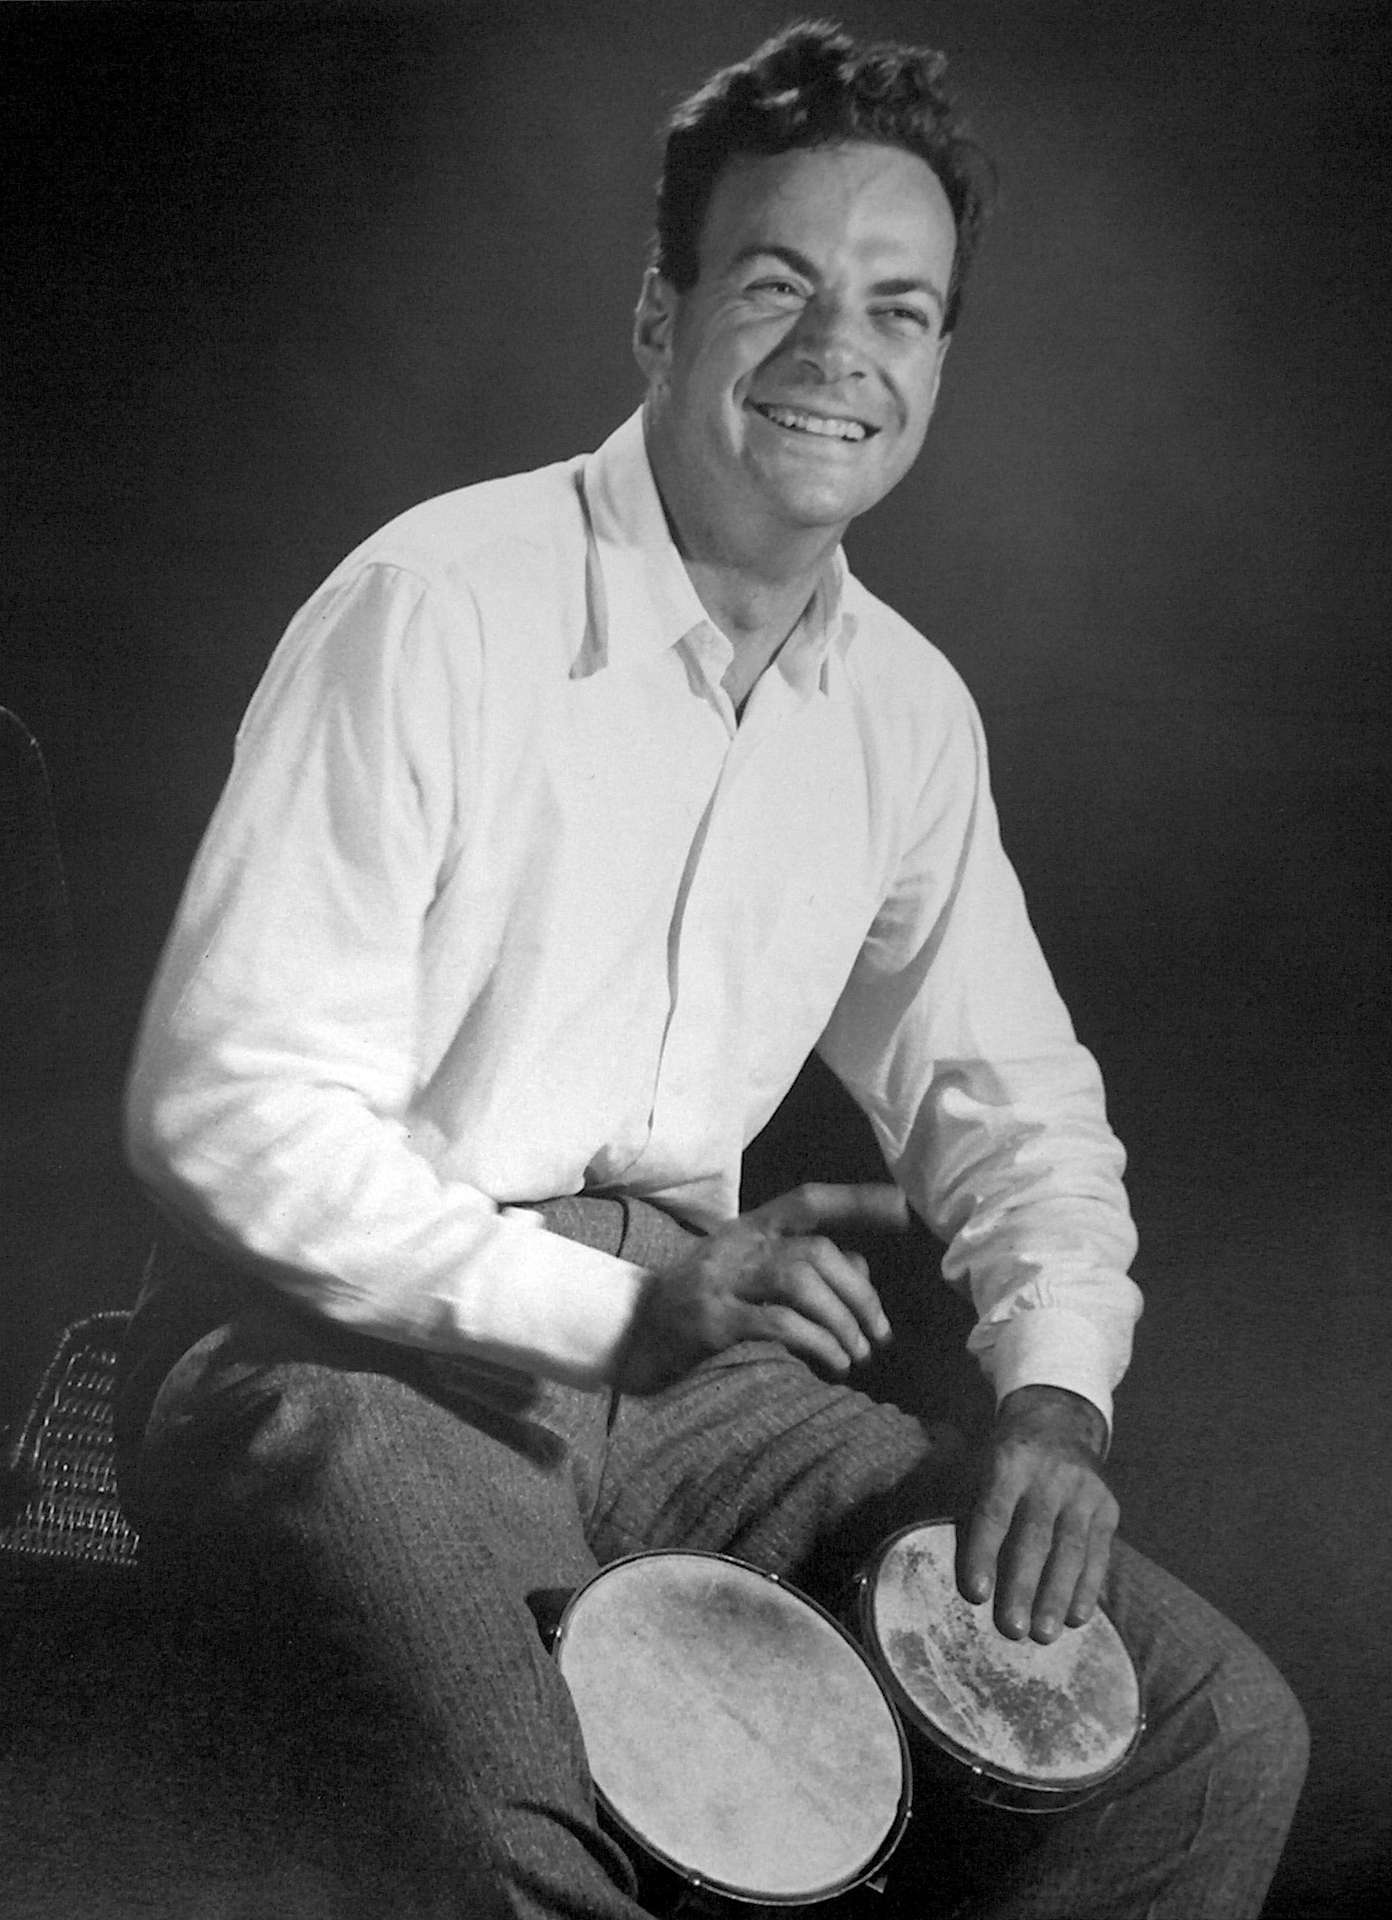 Le grand physicien Richard Feynman, pionnier des ordinateurs quantiques. © Tom Harvey